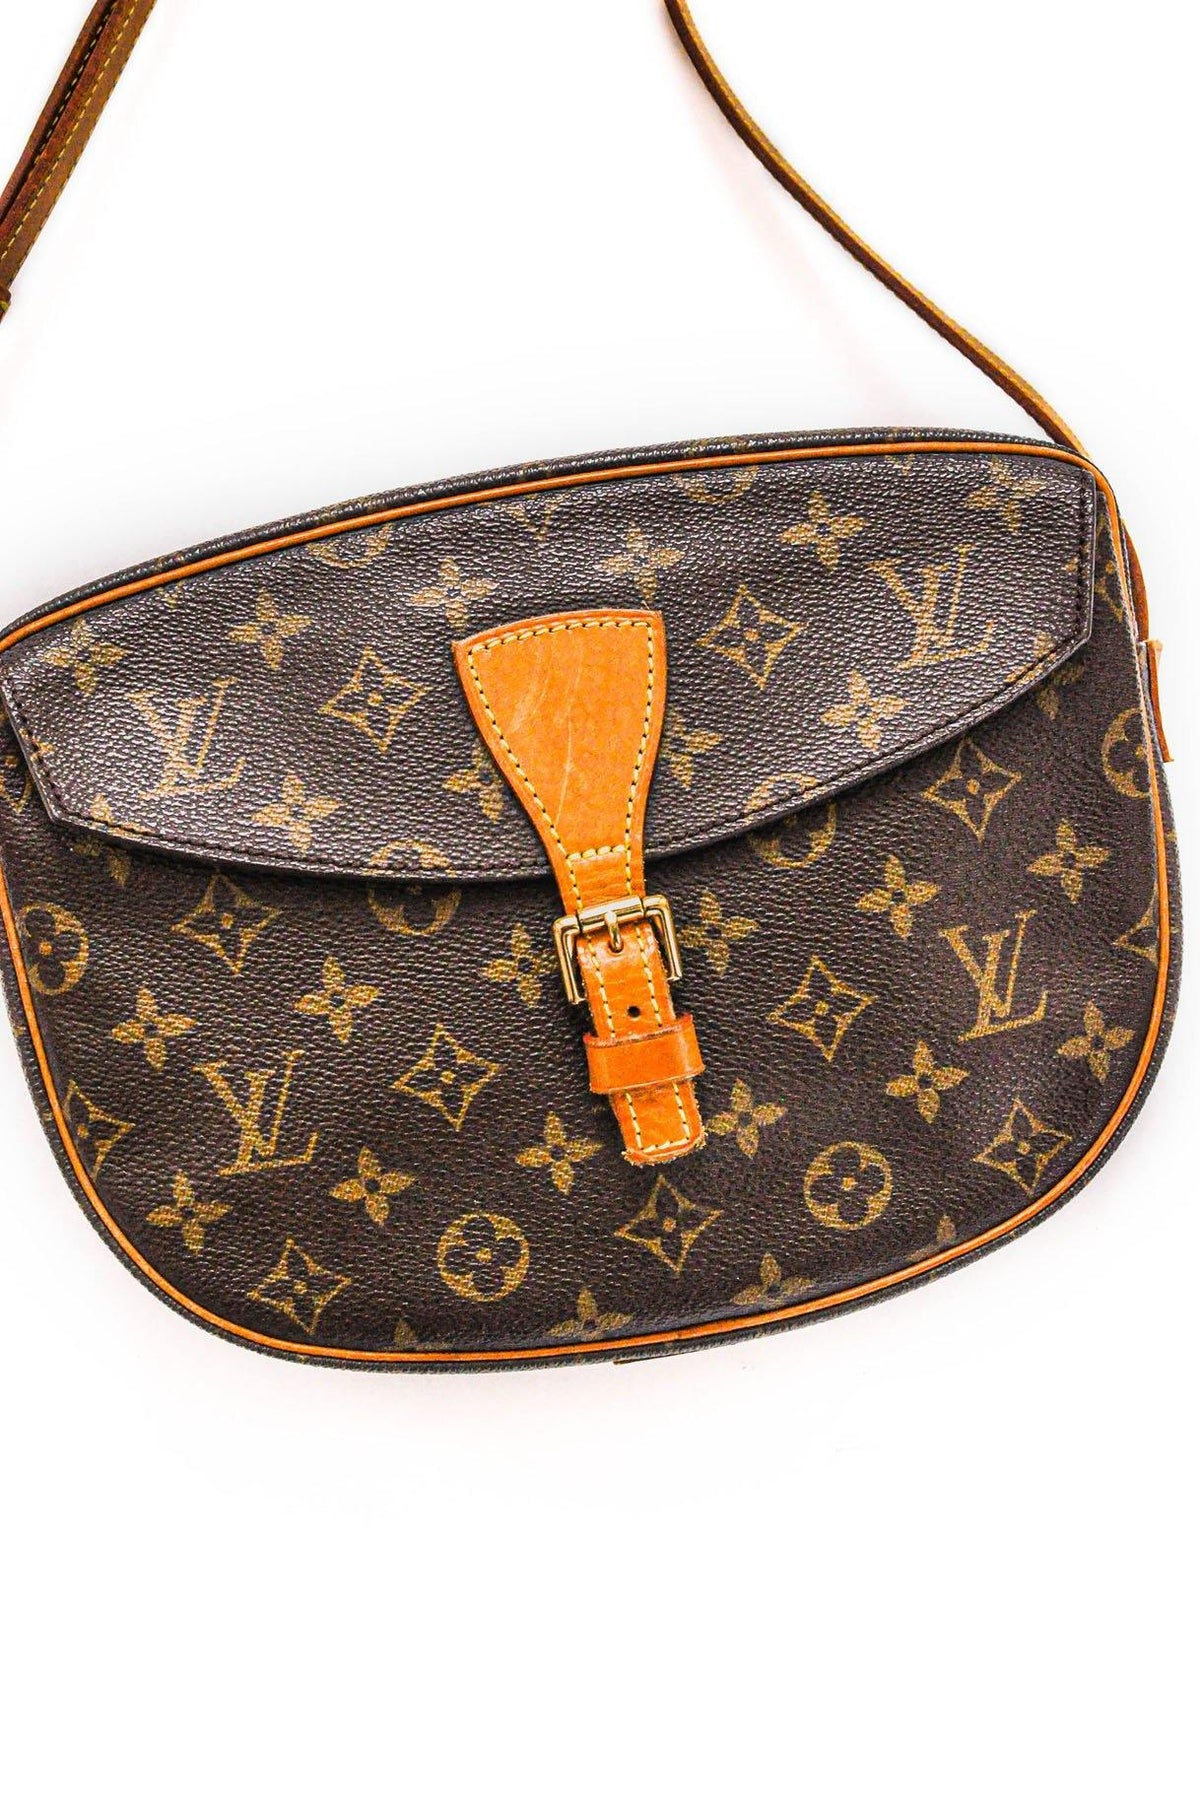 VintageLouis Vuitton Jeune Fille MM Crossbody Bag from sweet and SPark